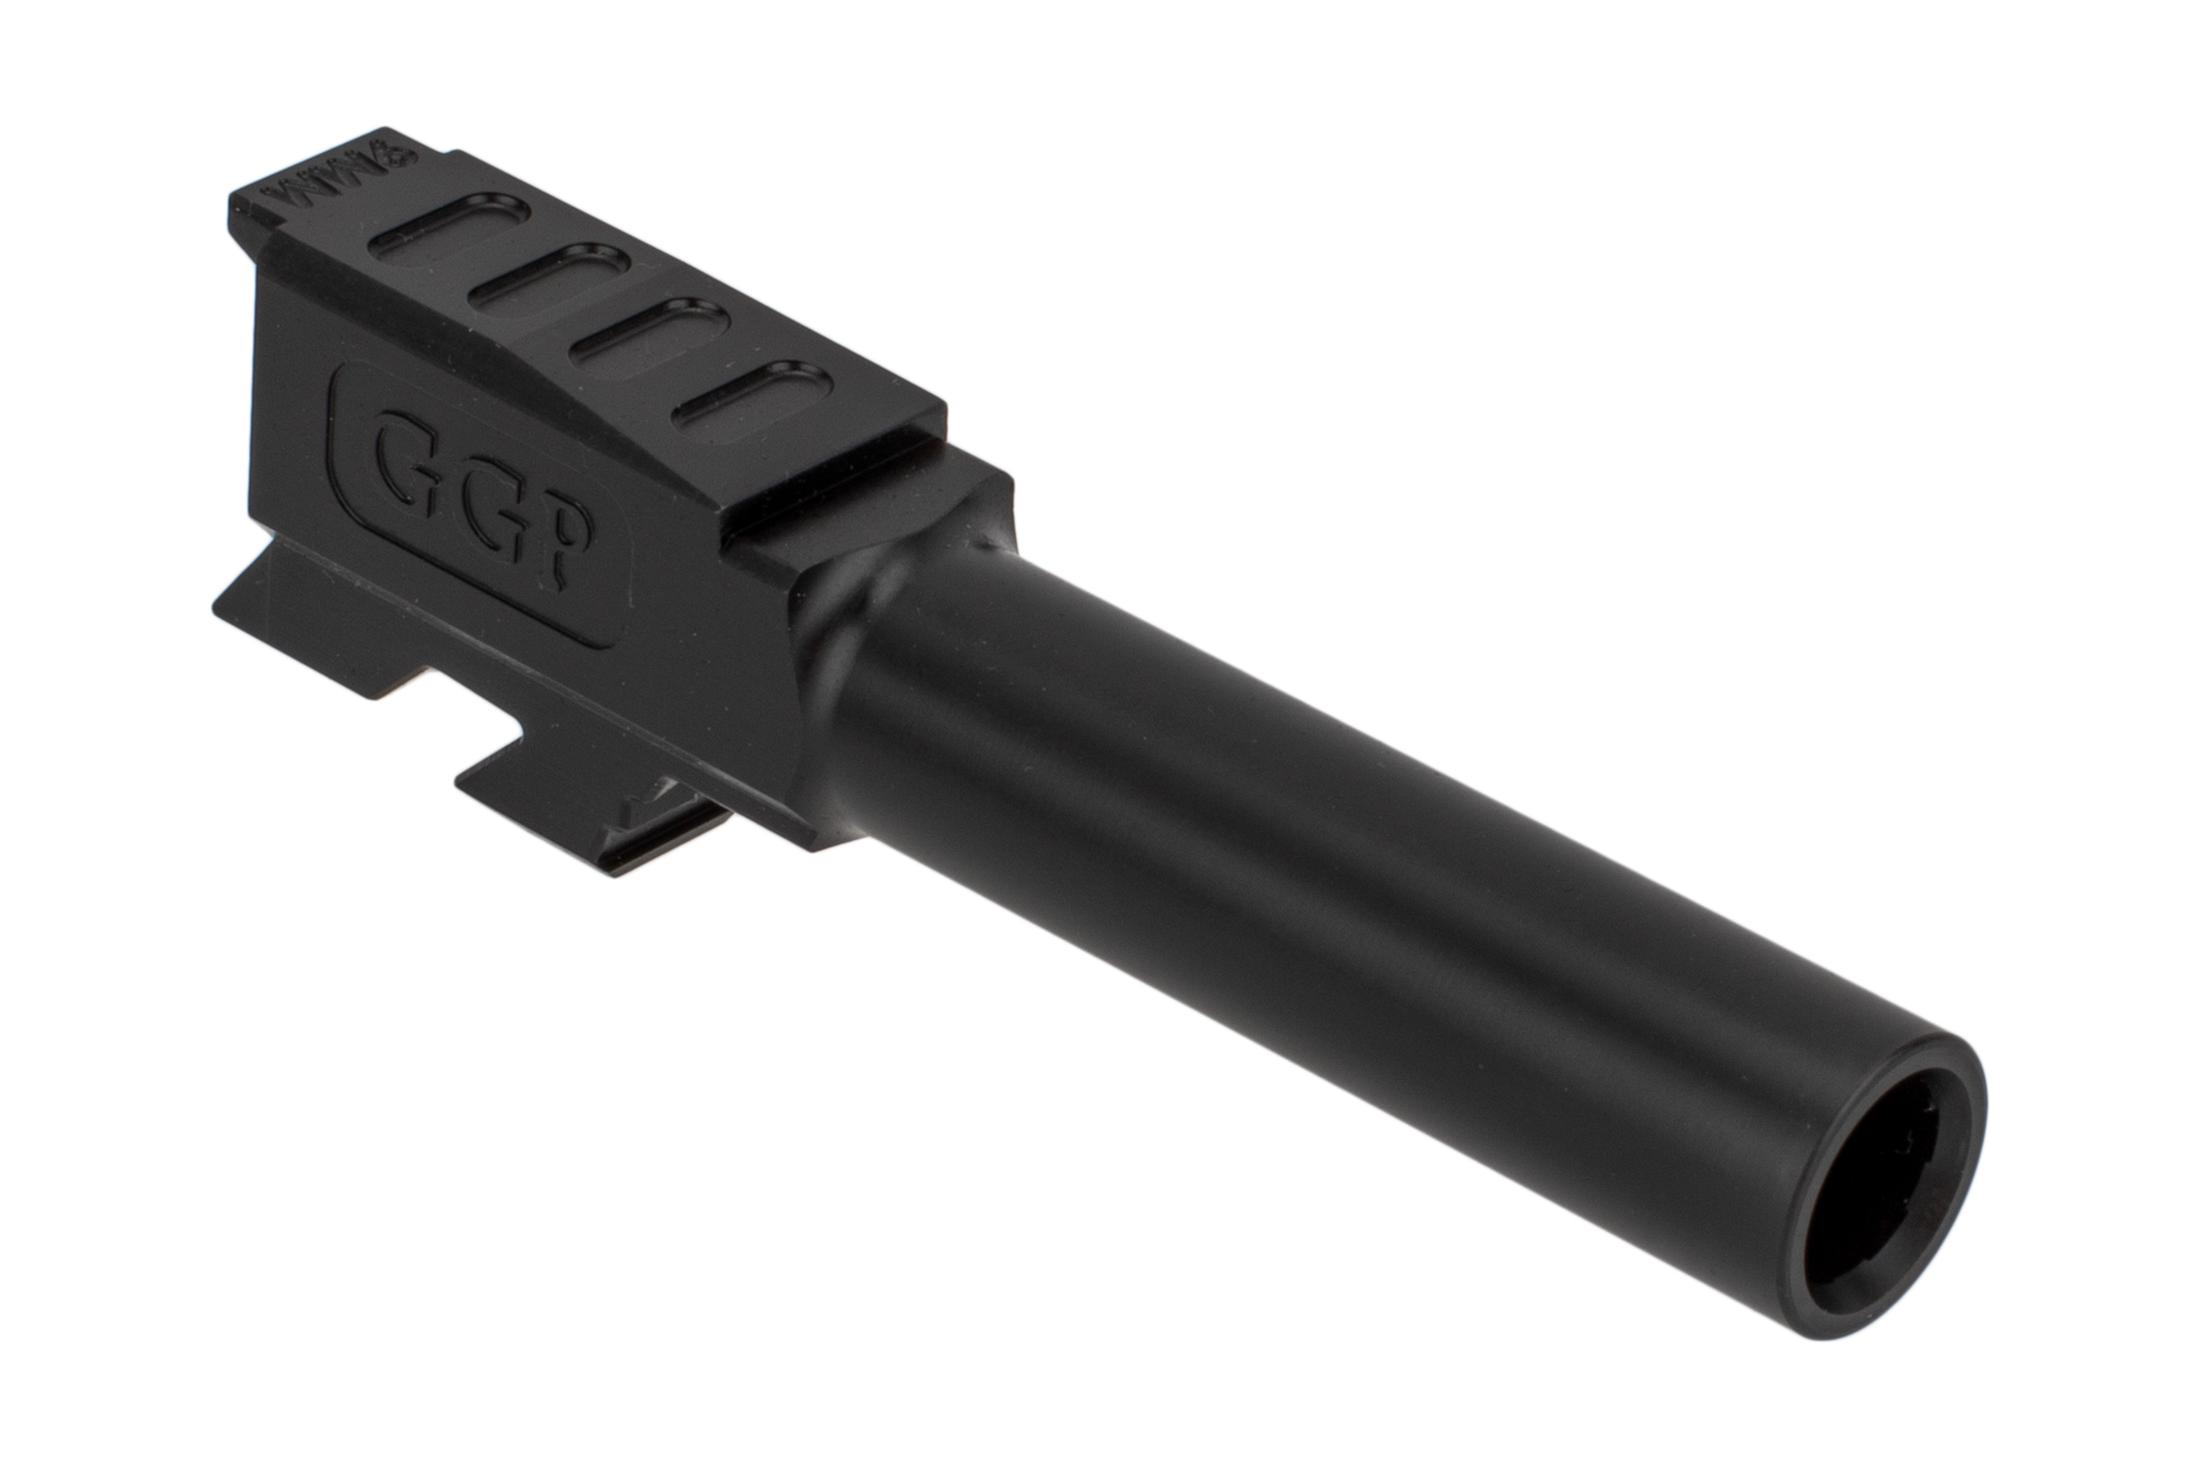 Grey Ghost Precision threaded match grade 416R stainless barrel for Glock 43 handguns with slick nitride finish